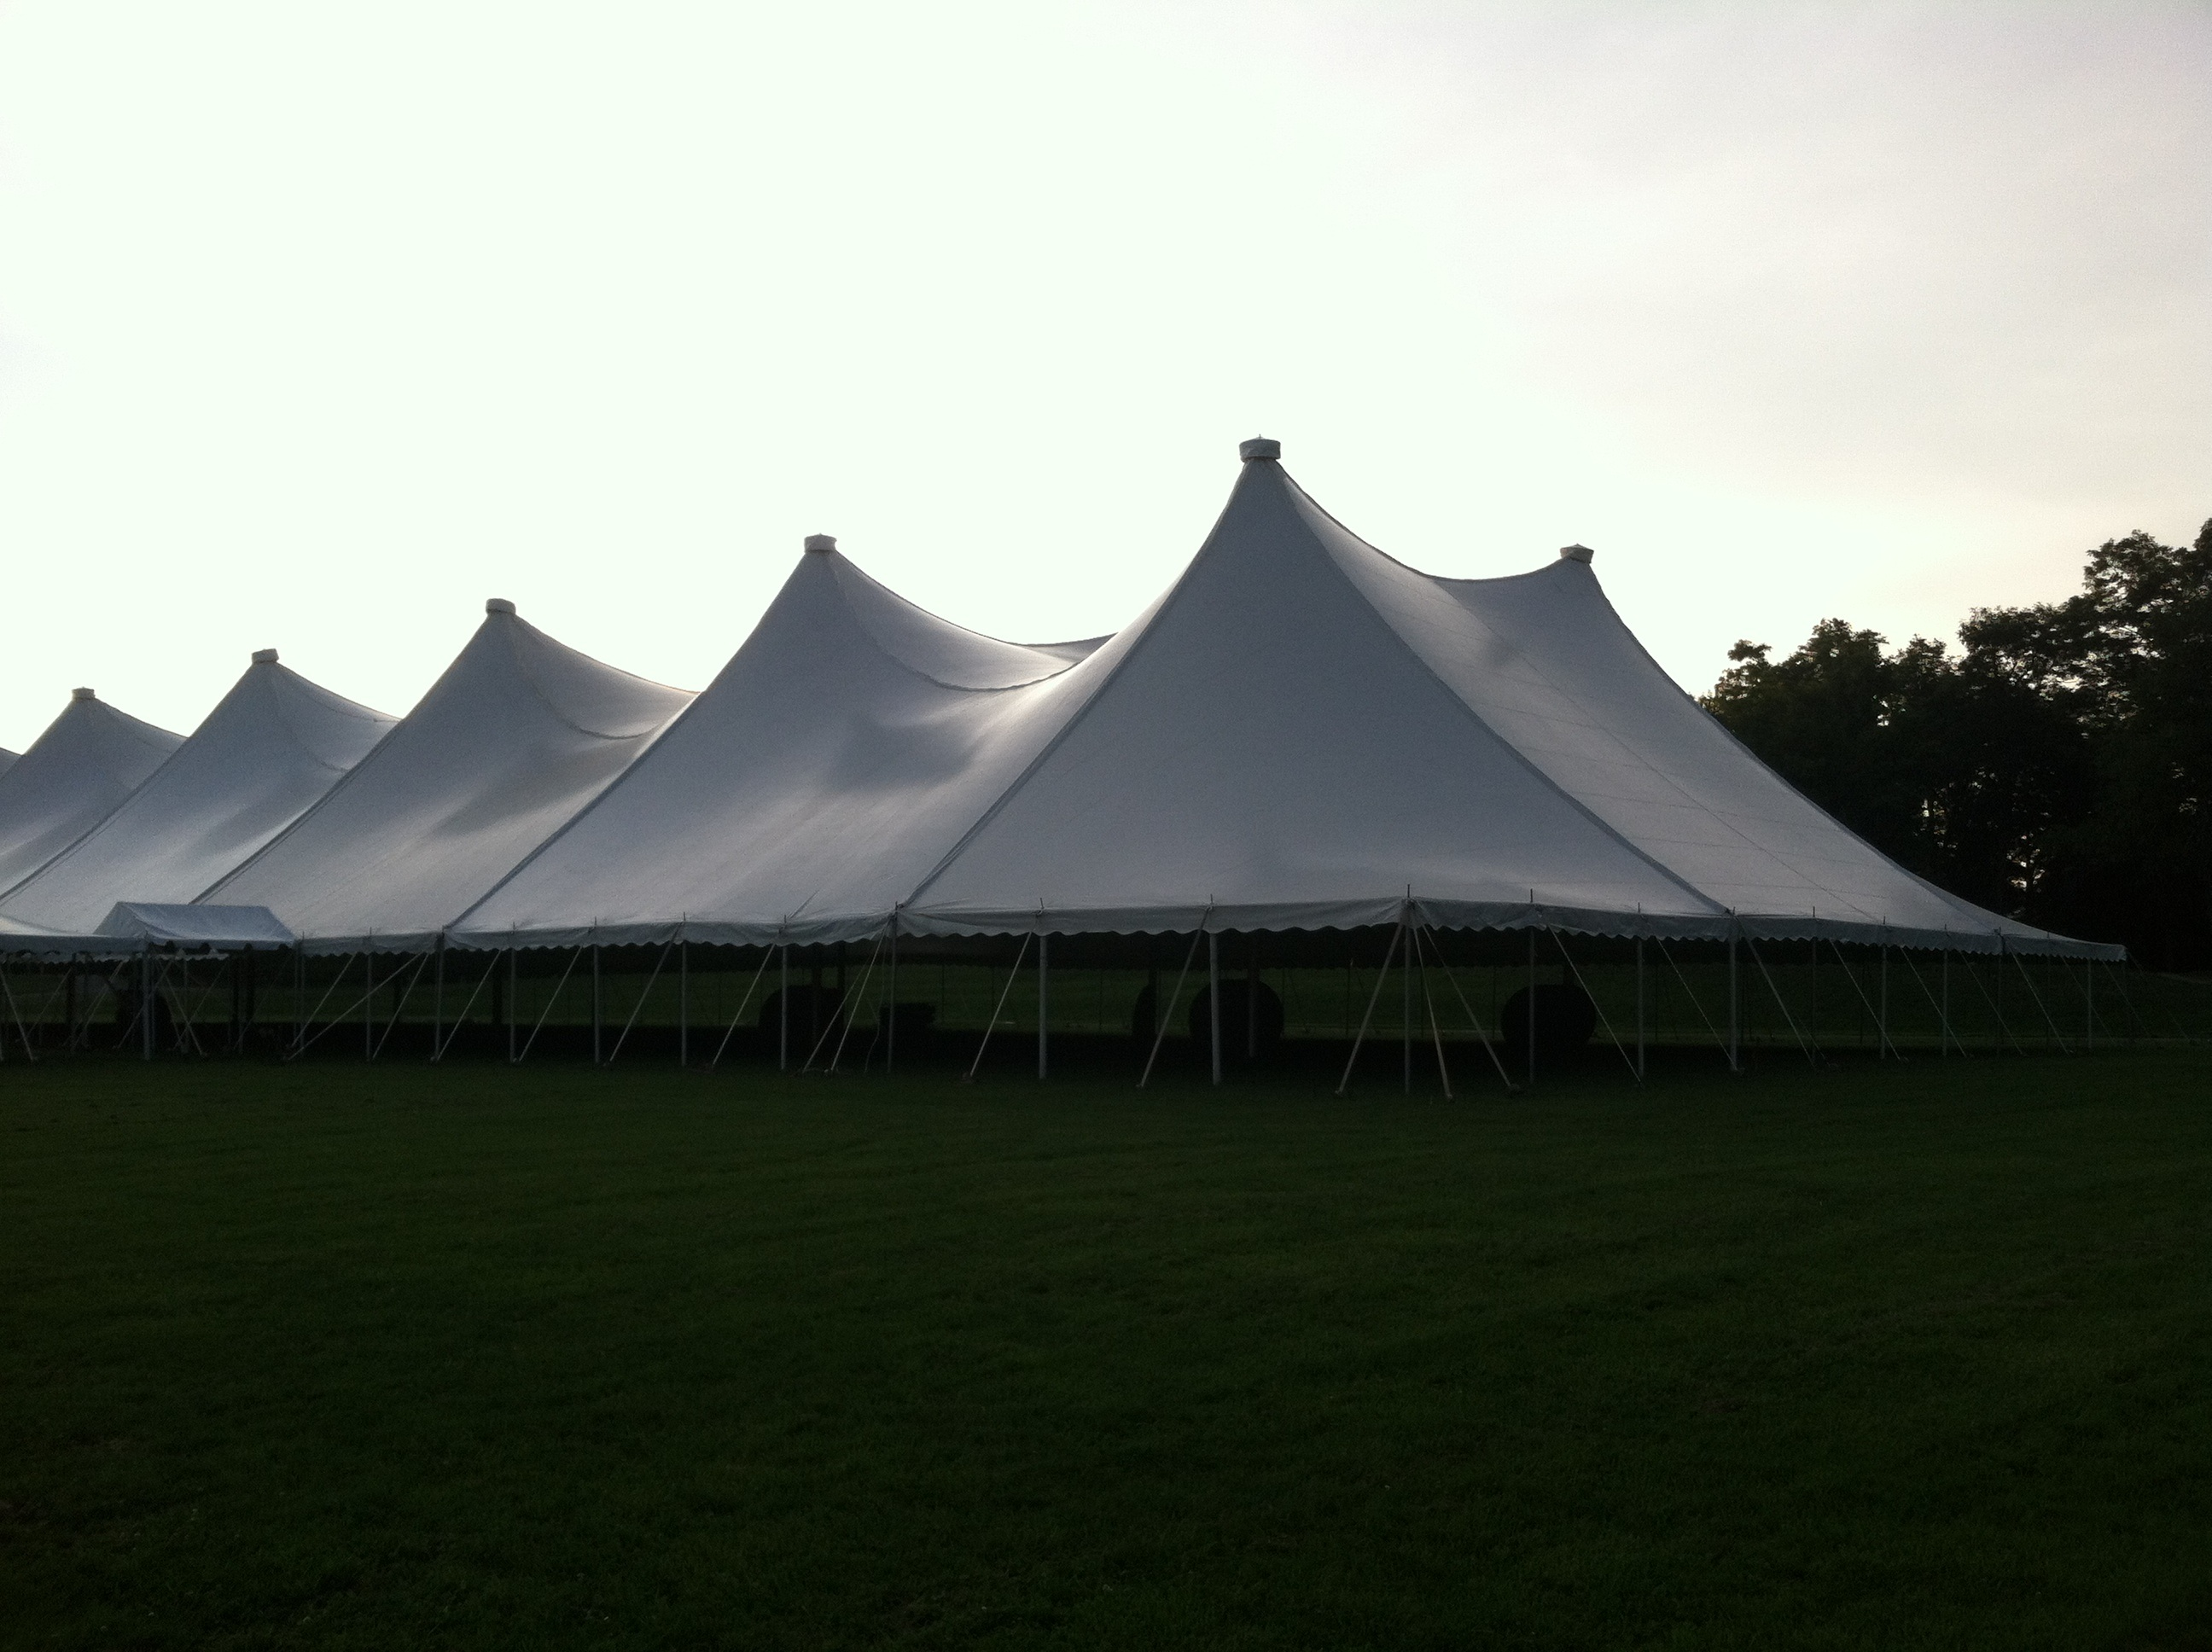 party tents on lawn